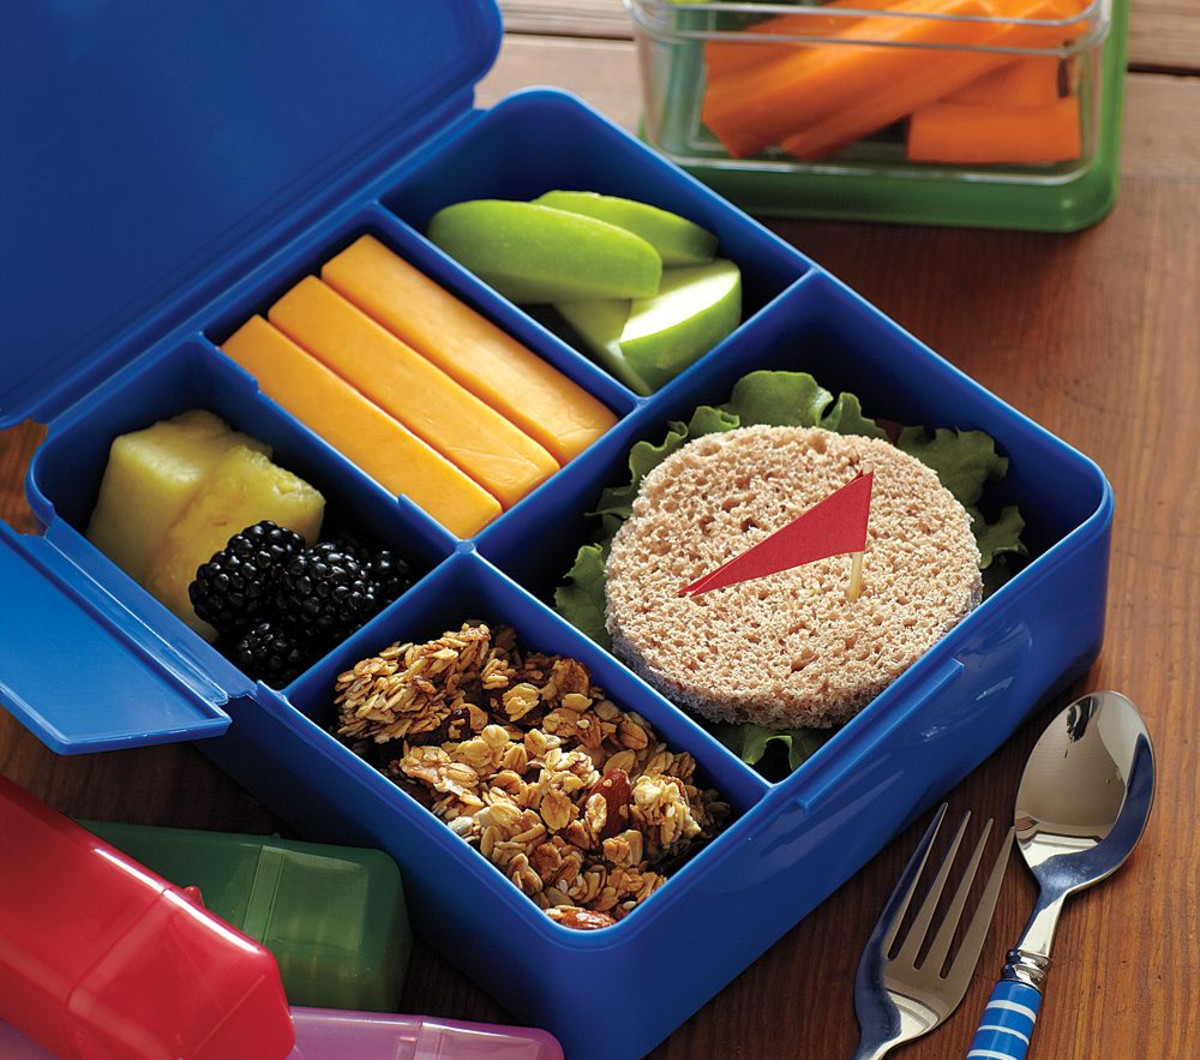 Bento Box Containers- Lunch Boxes For You